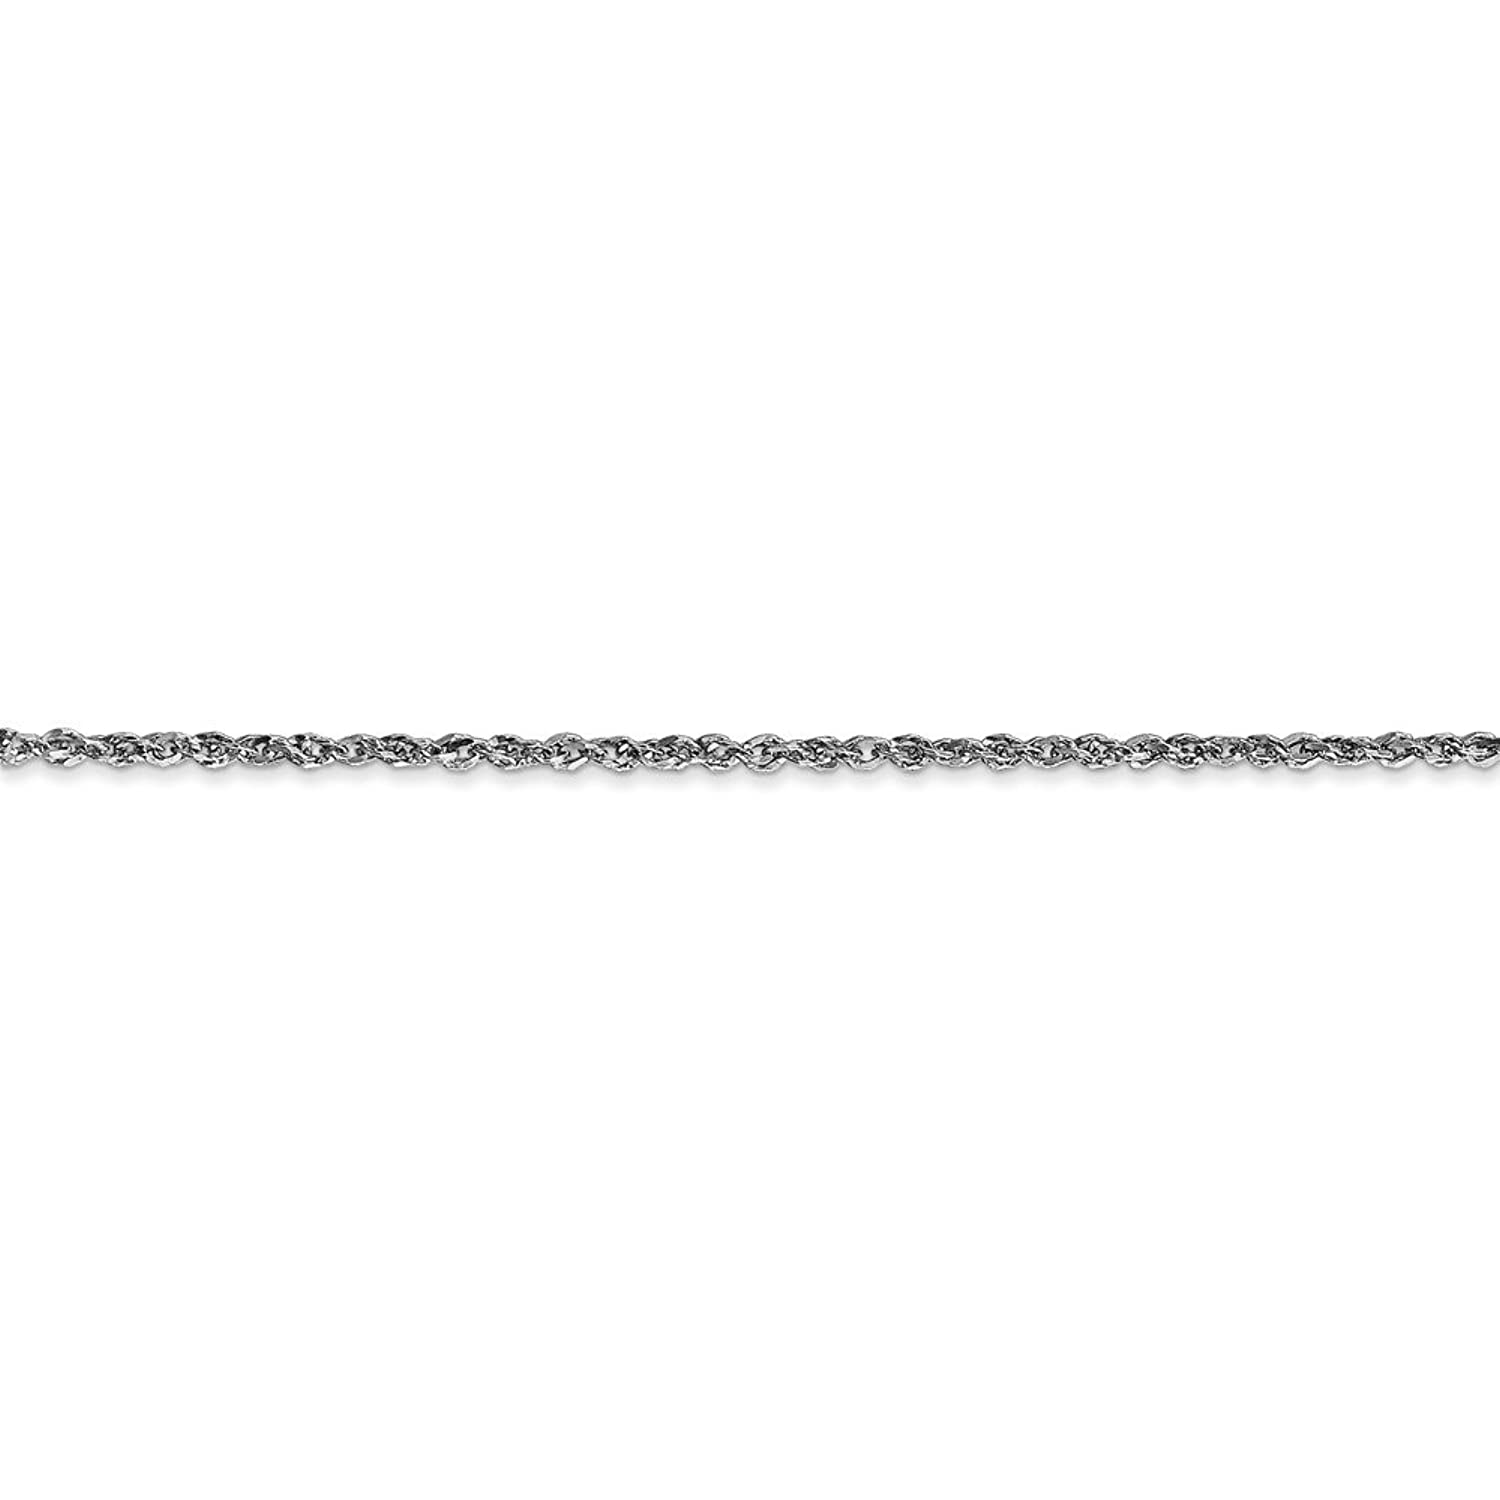 Roy Rose Jewelry 10k White Gold 1.7mm Ropa Chain ~ length 10 inches